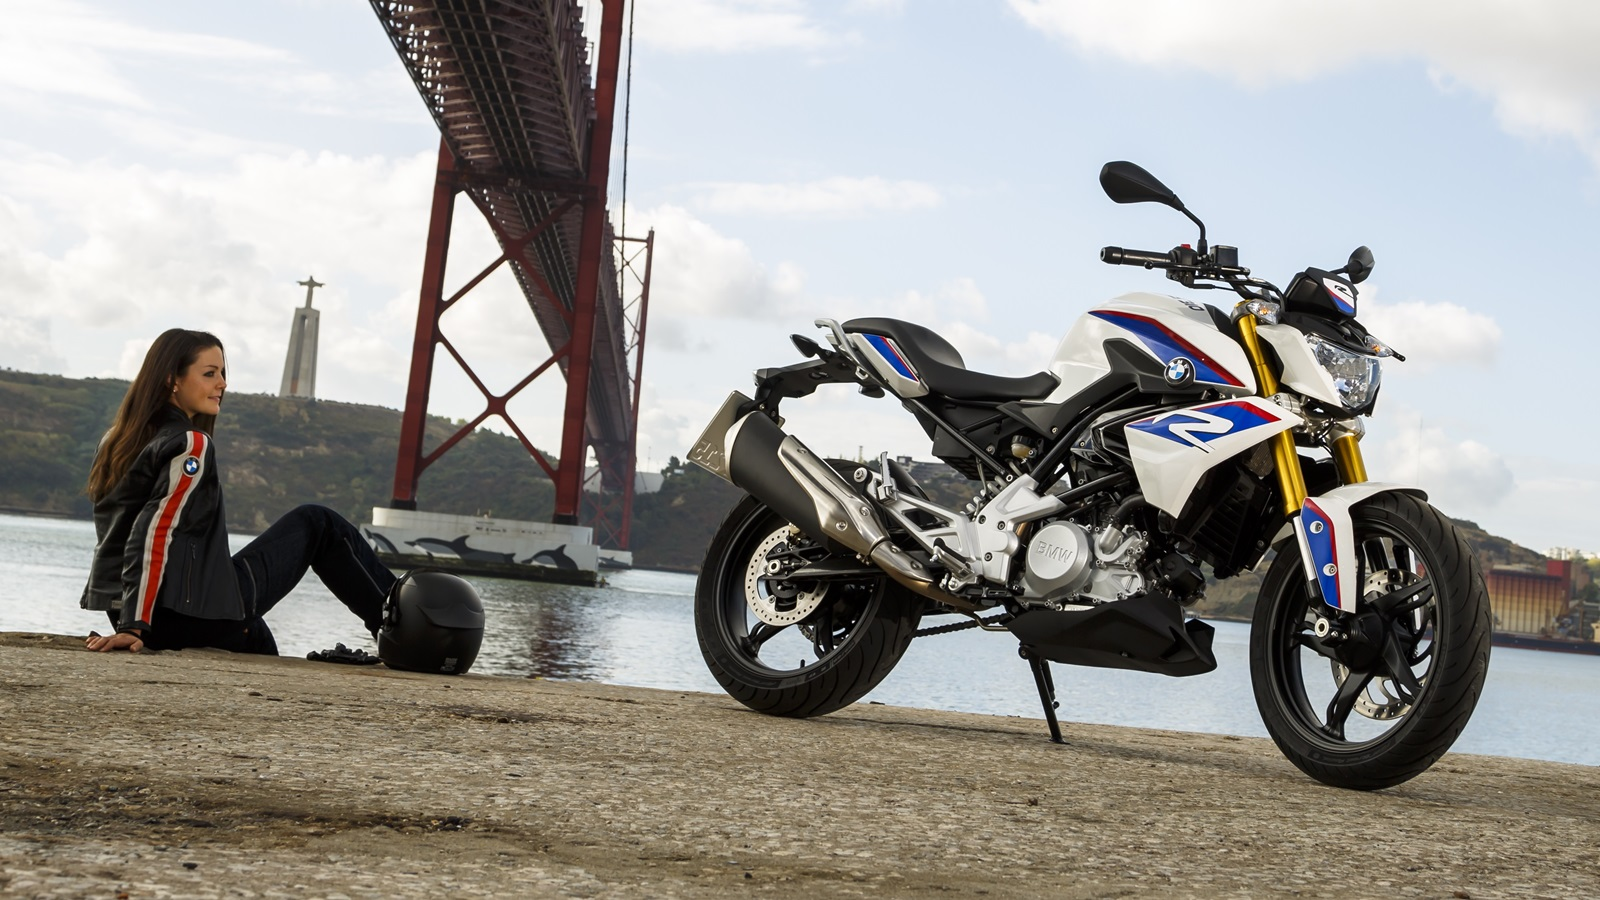 BMW G310R HD wallpaper